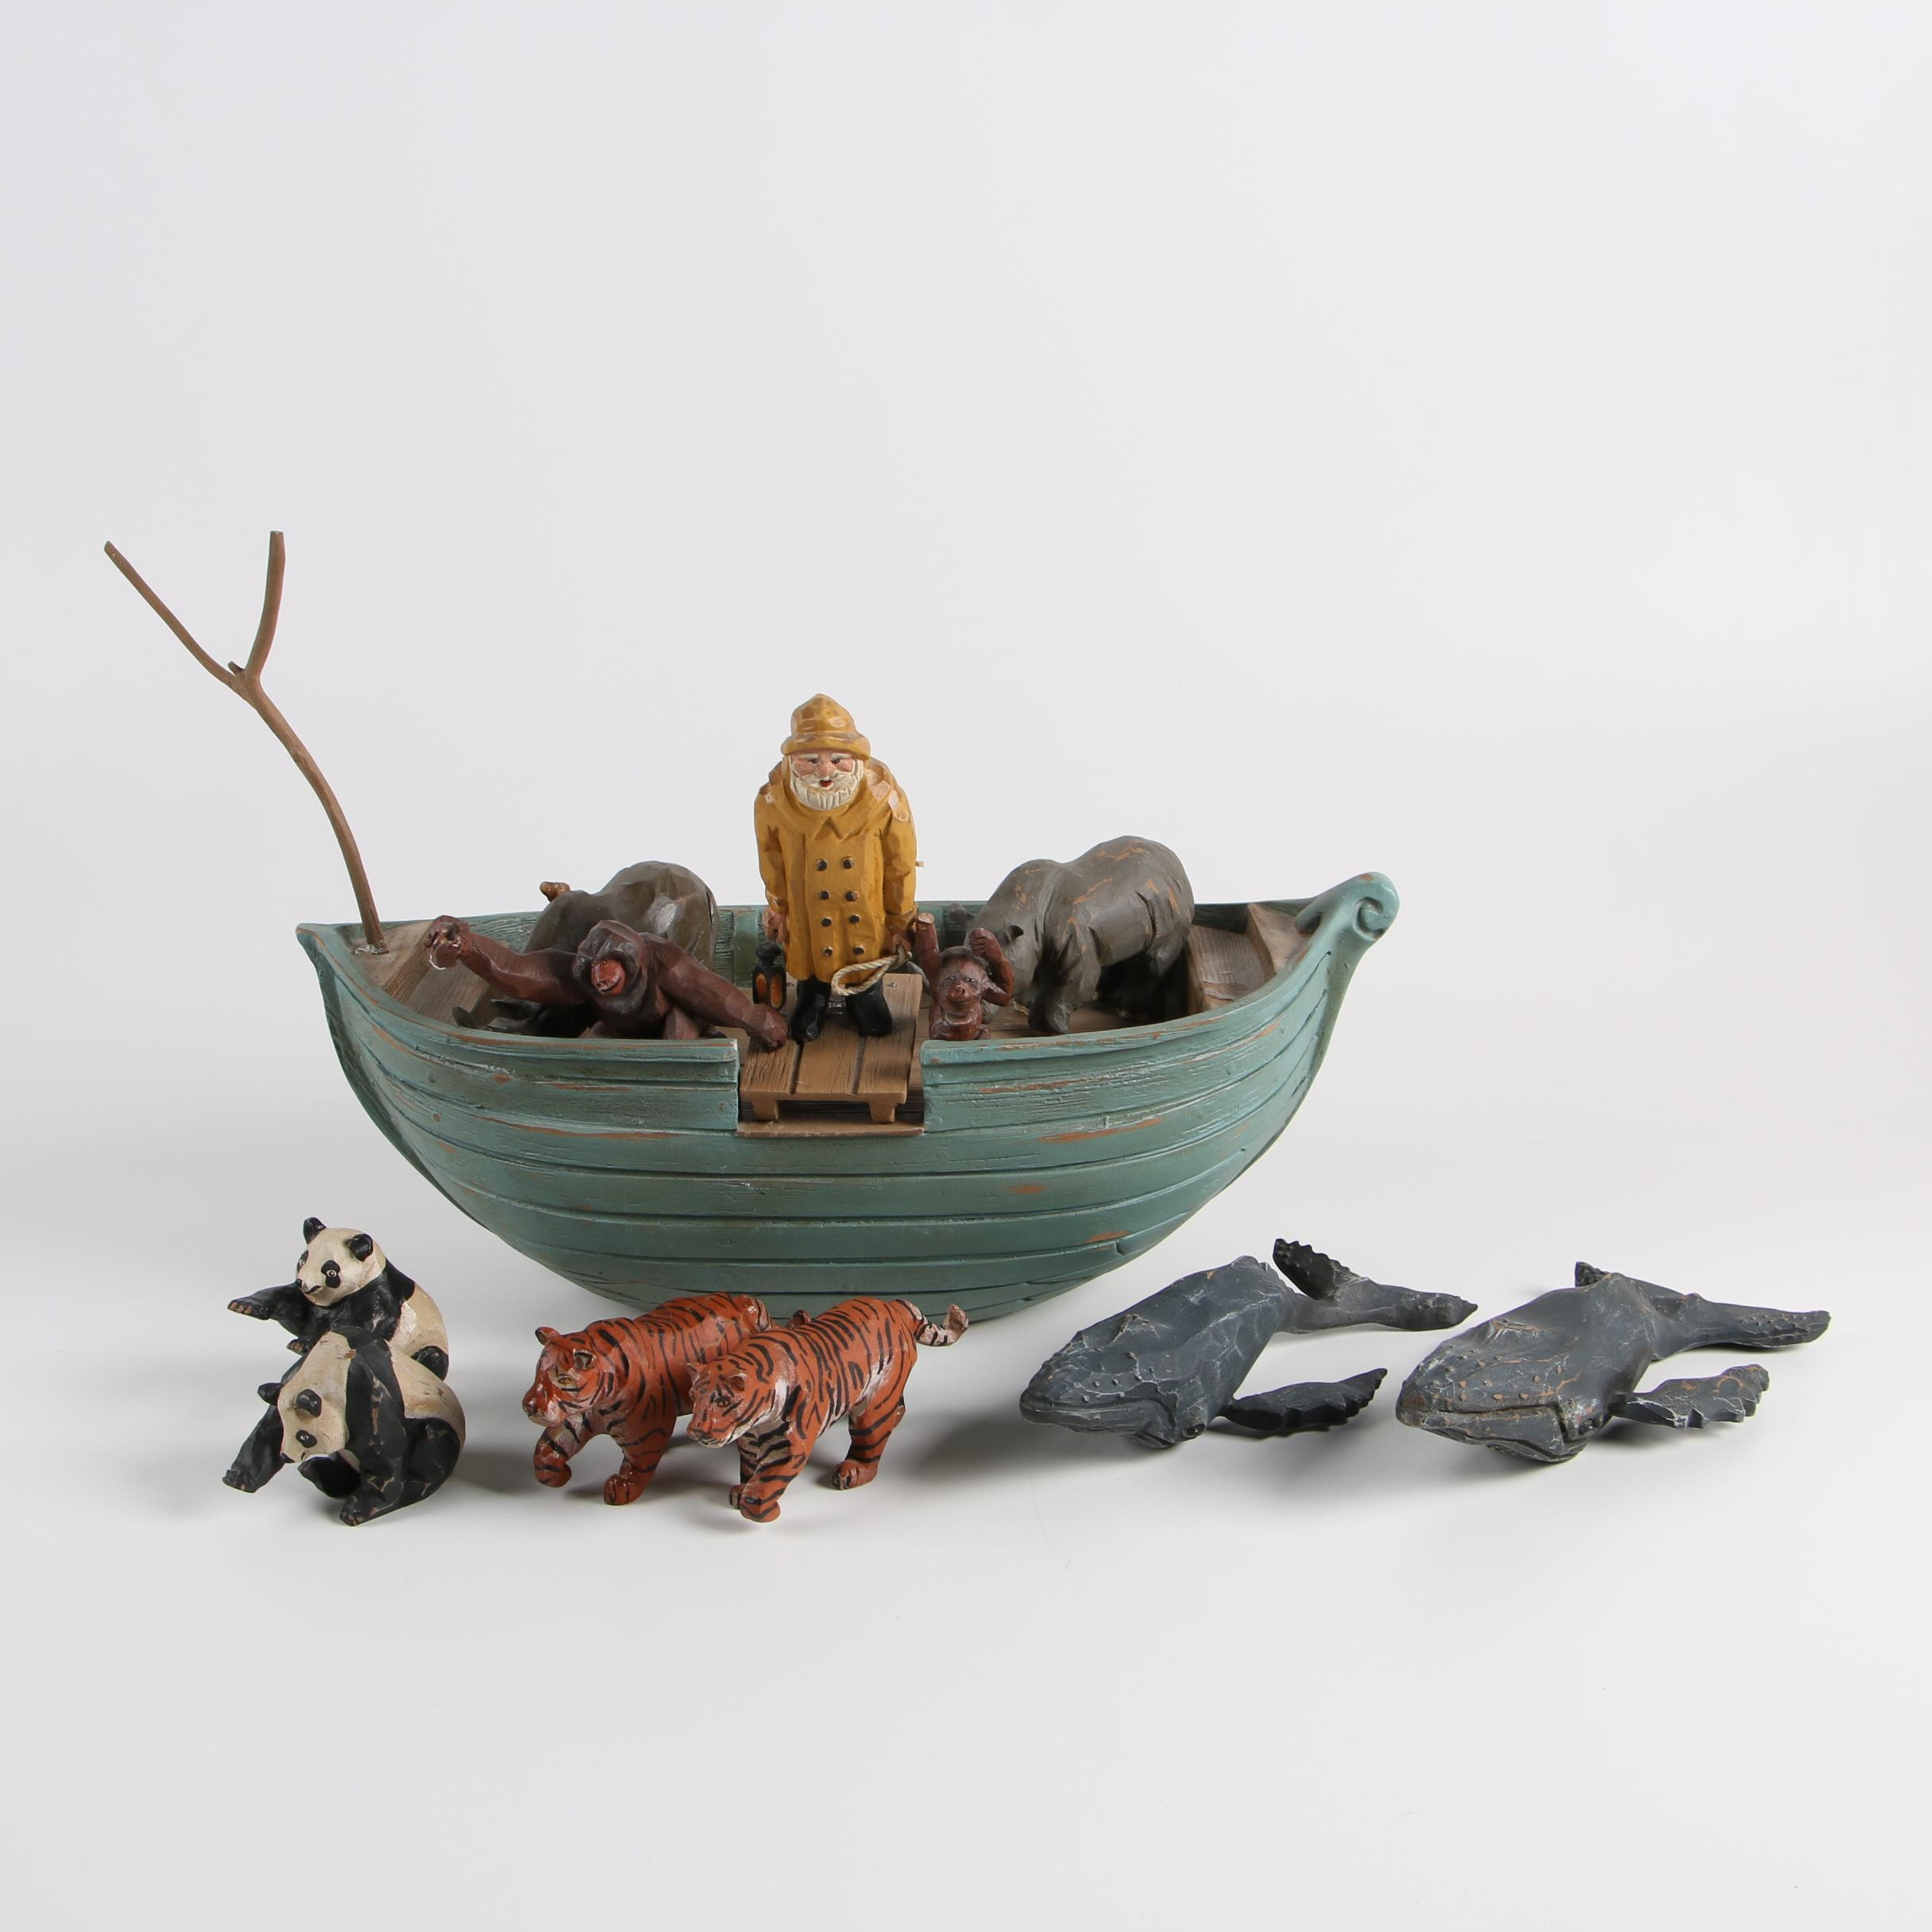 Carved Wood Limited Edition Fisherman with Boat and Animal Figurines